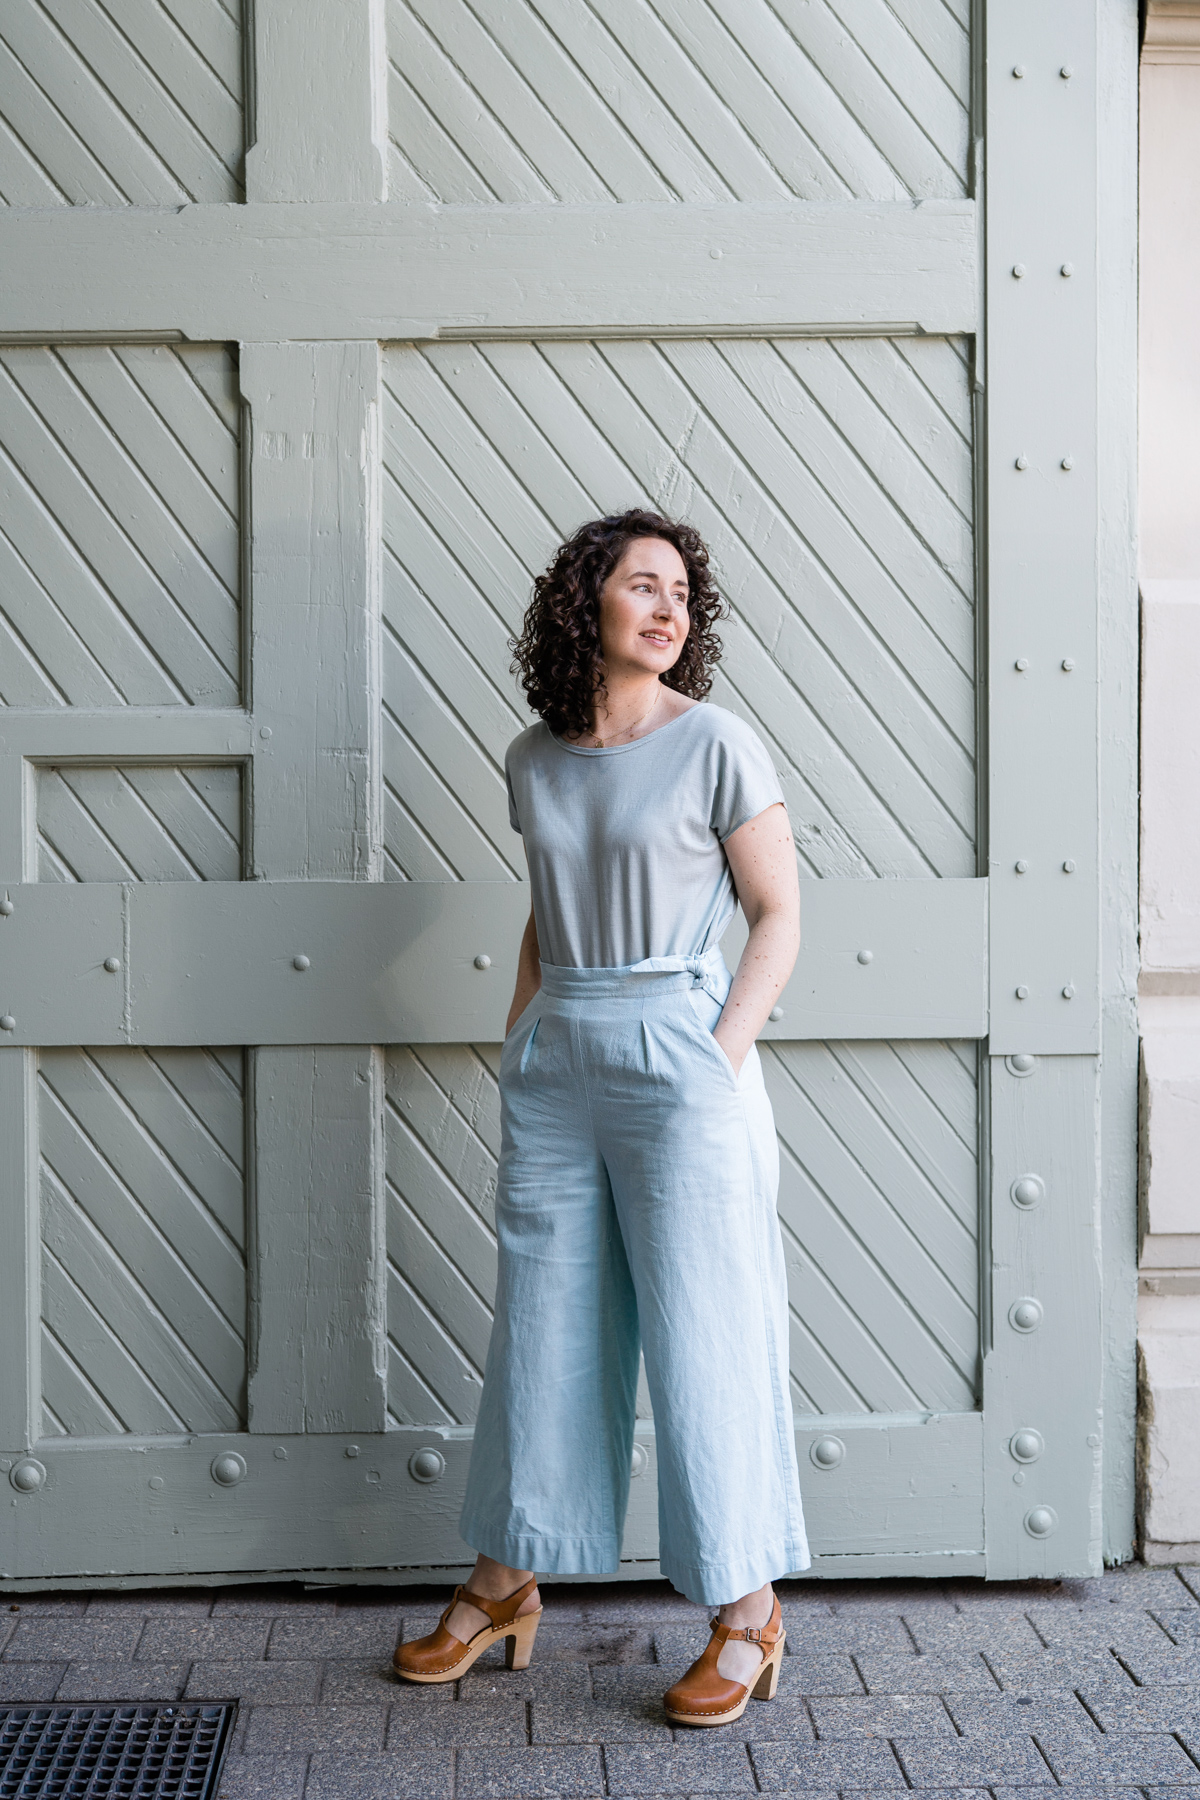 Meg tries #dresslikeacrayon using the Jarrah and Flint sewing patterns.